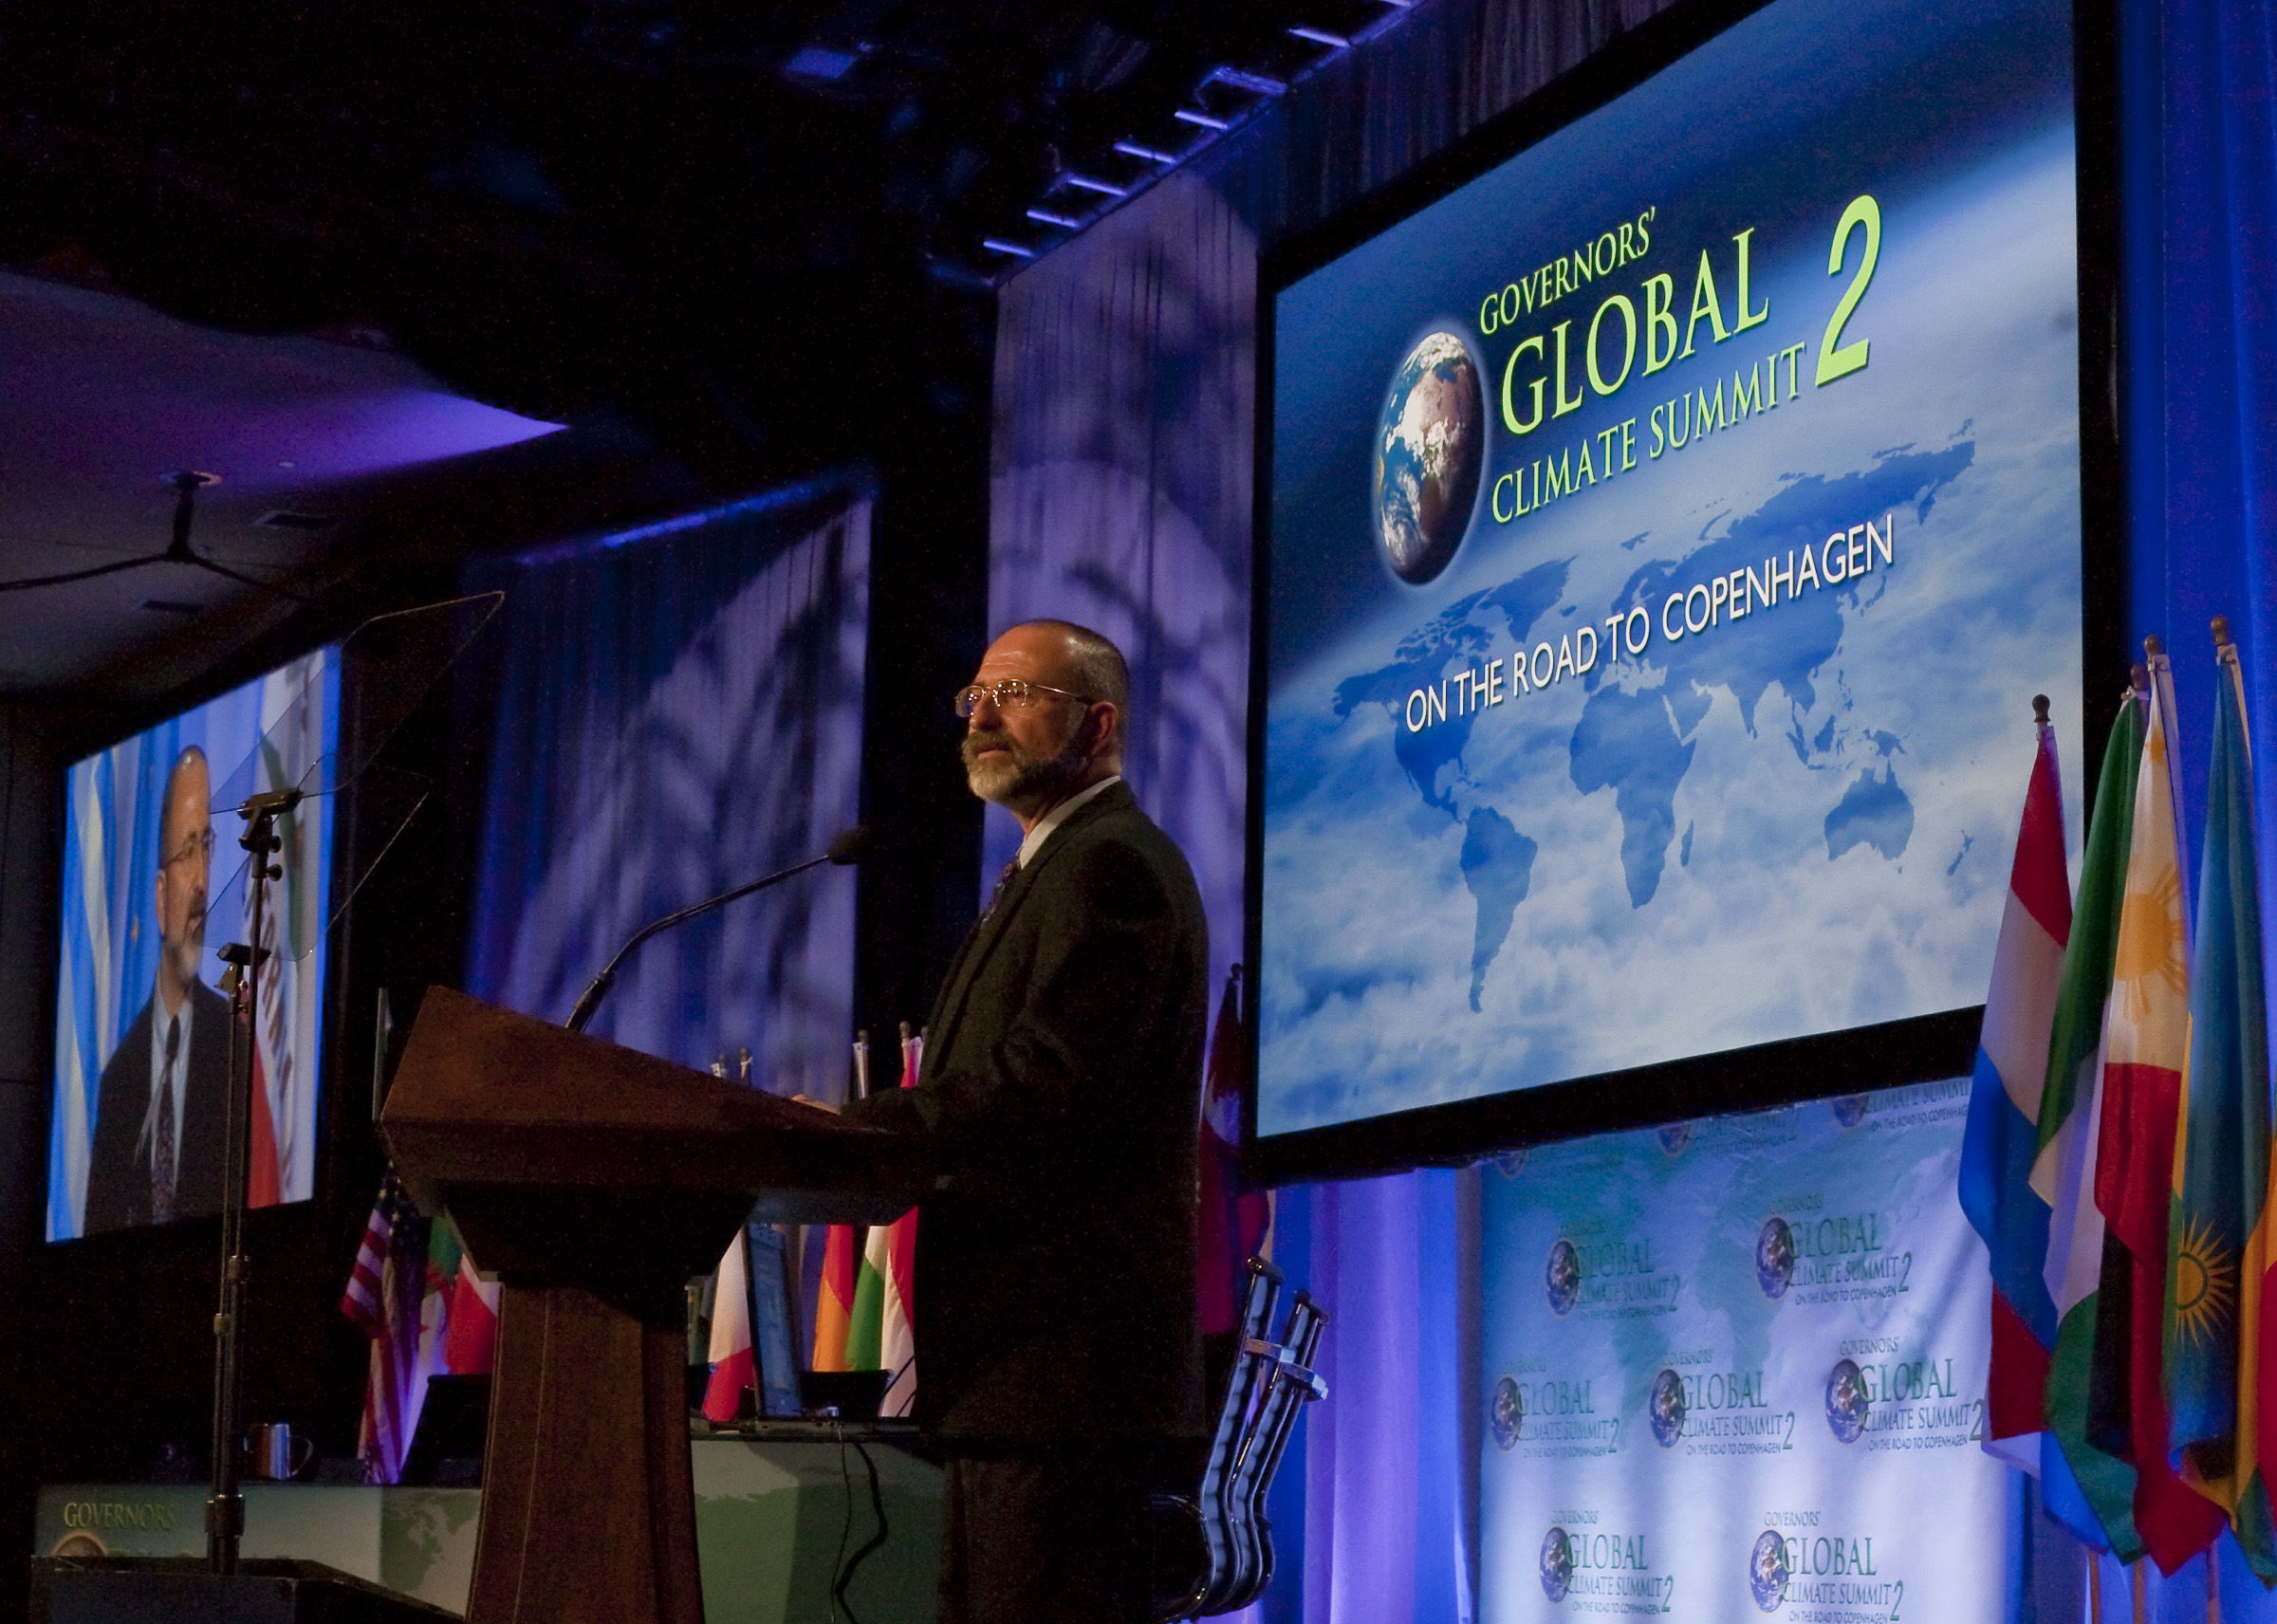 An assortment of luminaries attended the Governors' Global Climate Summit earlier this month, ranging from Arnold Schwarzenegger to Tony Blair to Harrison Ford. NASA Jet Propulsion Laboratory's very own Kevin Hussey (pictured) was there to preview our interactive tool.